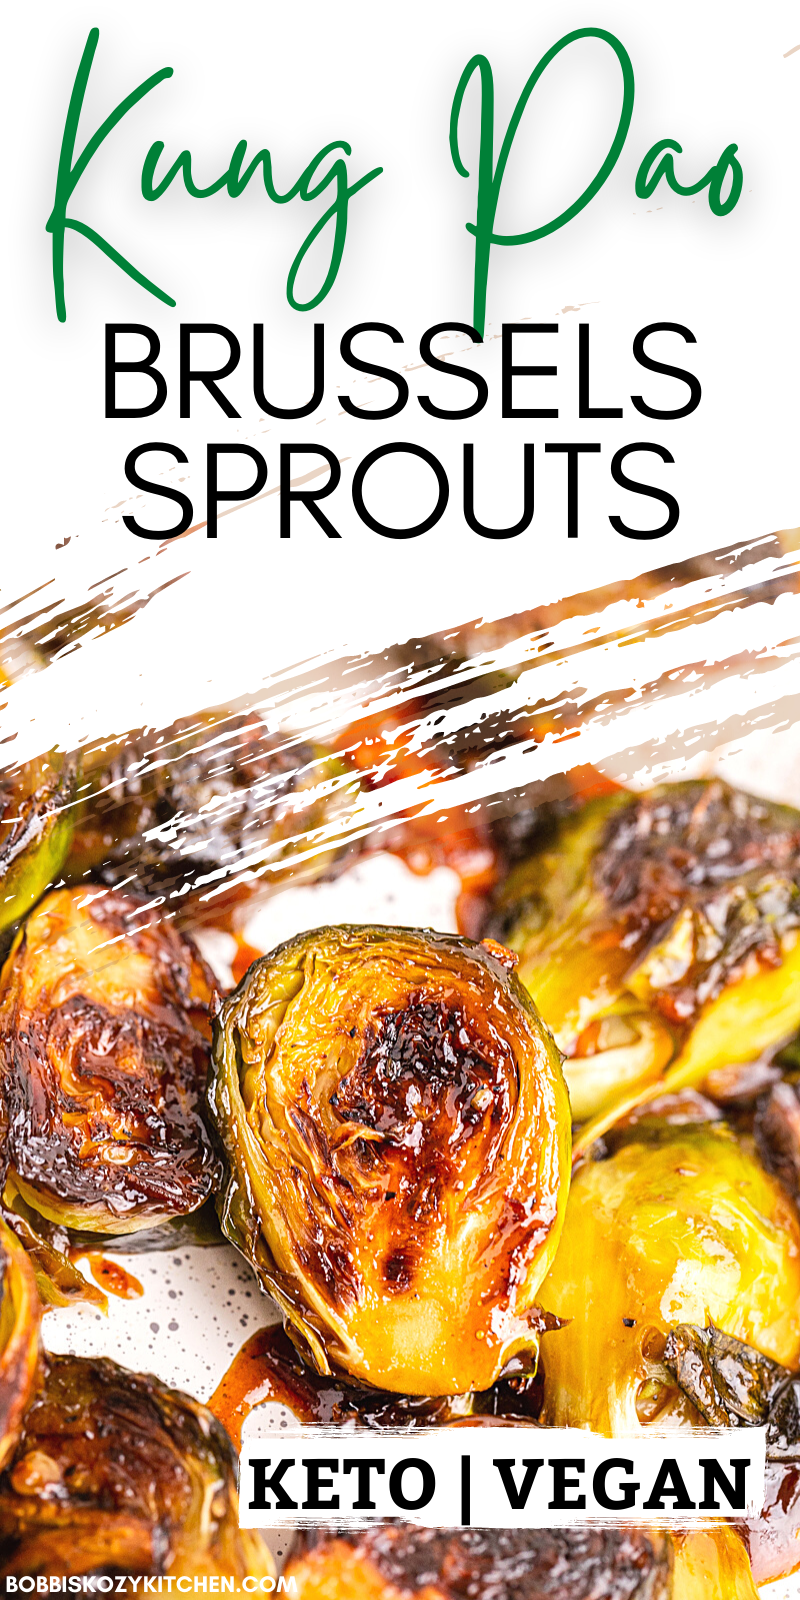 Kung Pao Brussels Sprouts - This Kung Pao Brussels sprouts dish is my keto take on a popular Chinese stir-fry recipe, Kung Pao chicken. Roasted brussels sprouts coated with a sweet and spicy glaze, it is crazy good and so addictive! #keto #lowcarb #glutenfree #vegetarian #vegan #vegetable #sidedish #easy #chinese #brusselssprouts #recipe